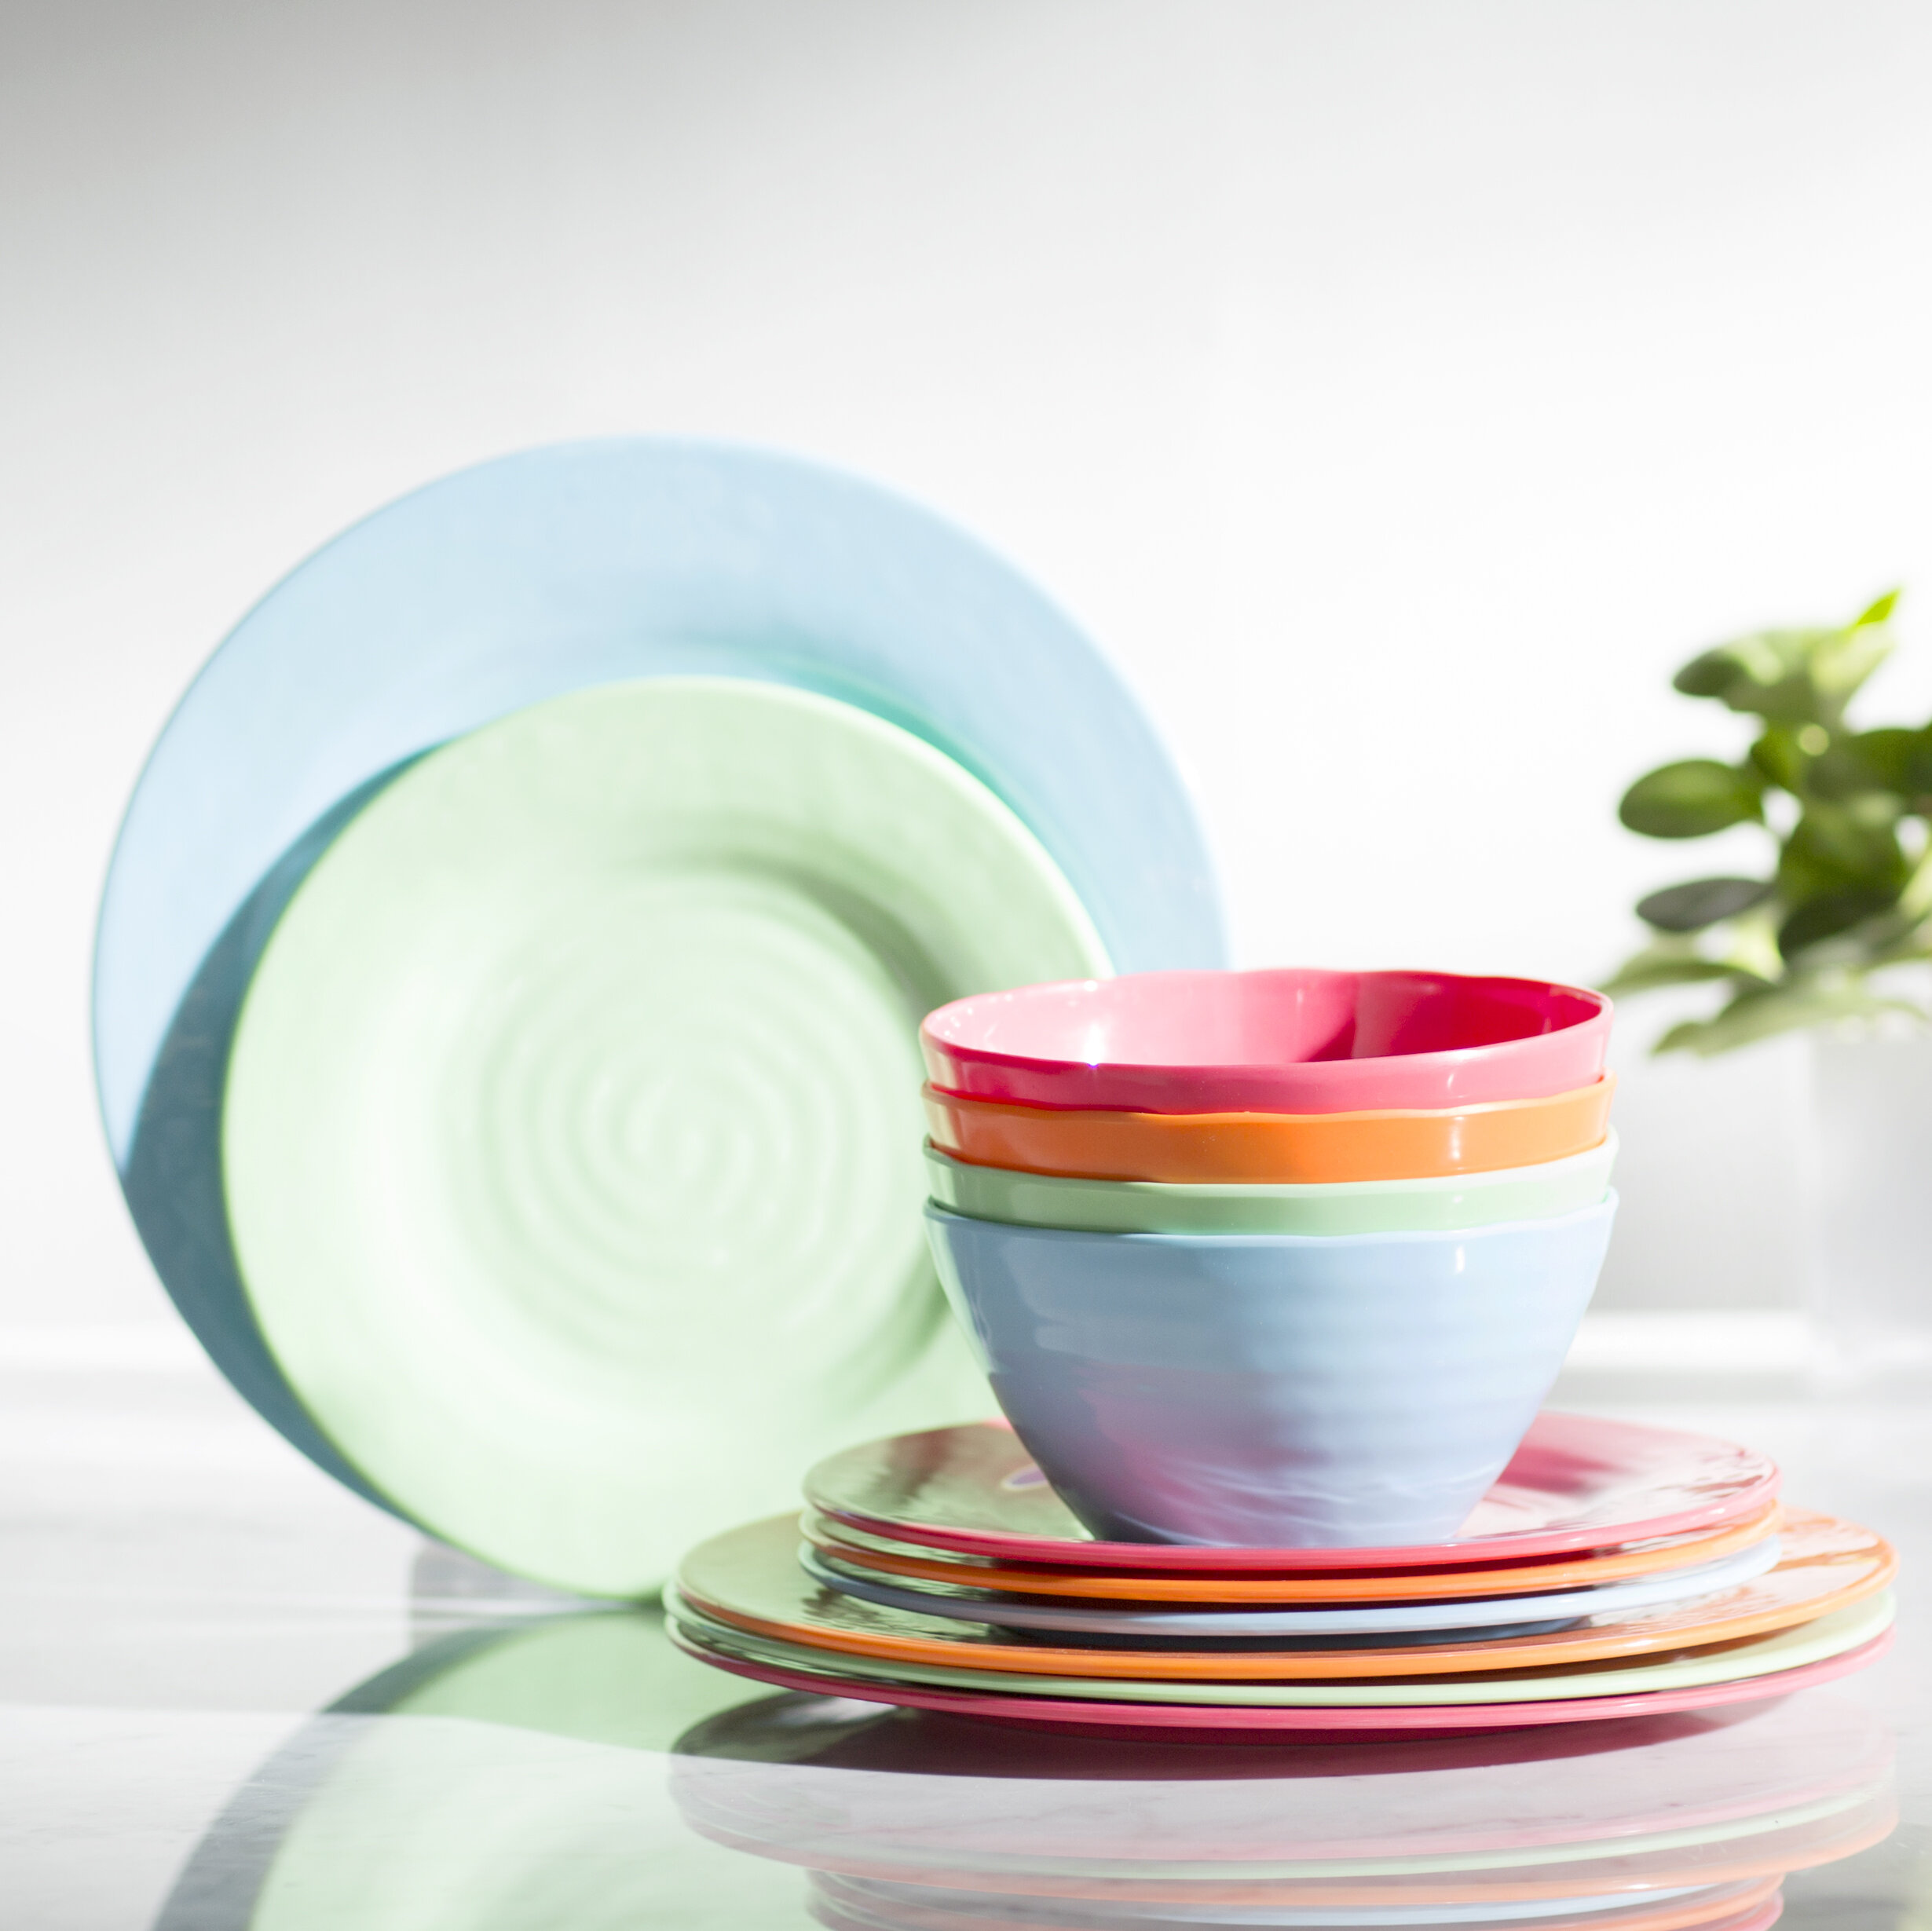 Gibson Melamine Brist 12 Piece Dinnerware Set Service for 4 u0026 Reviews | Wayfair  sc 1 st  Wayfair : dinnerware - pezcame.com